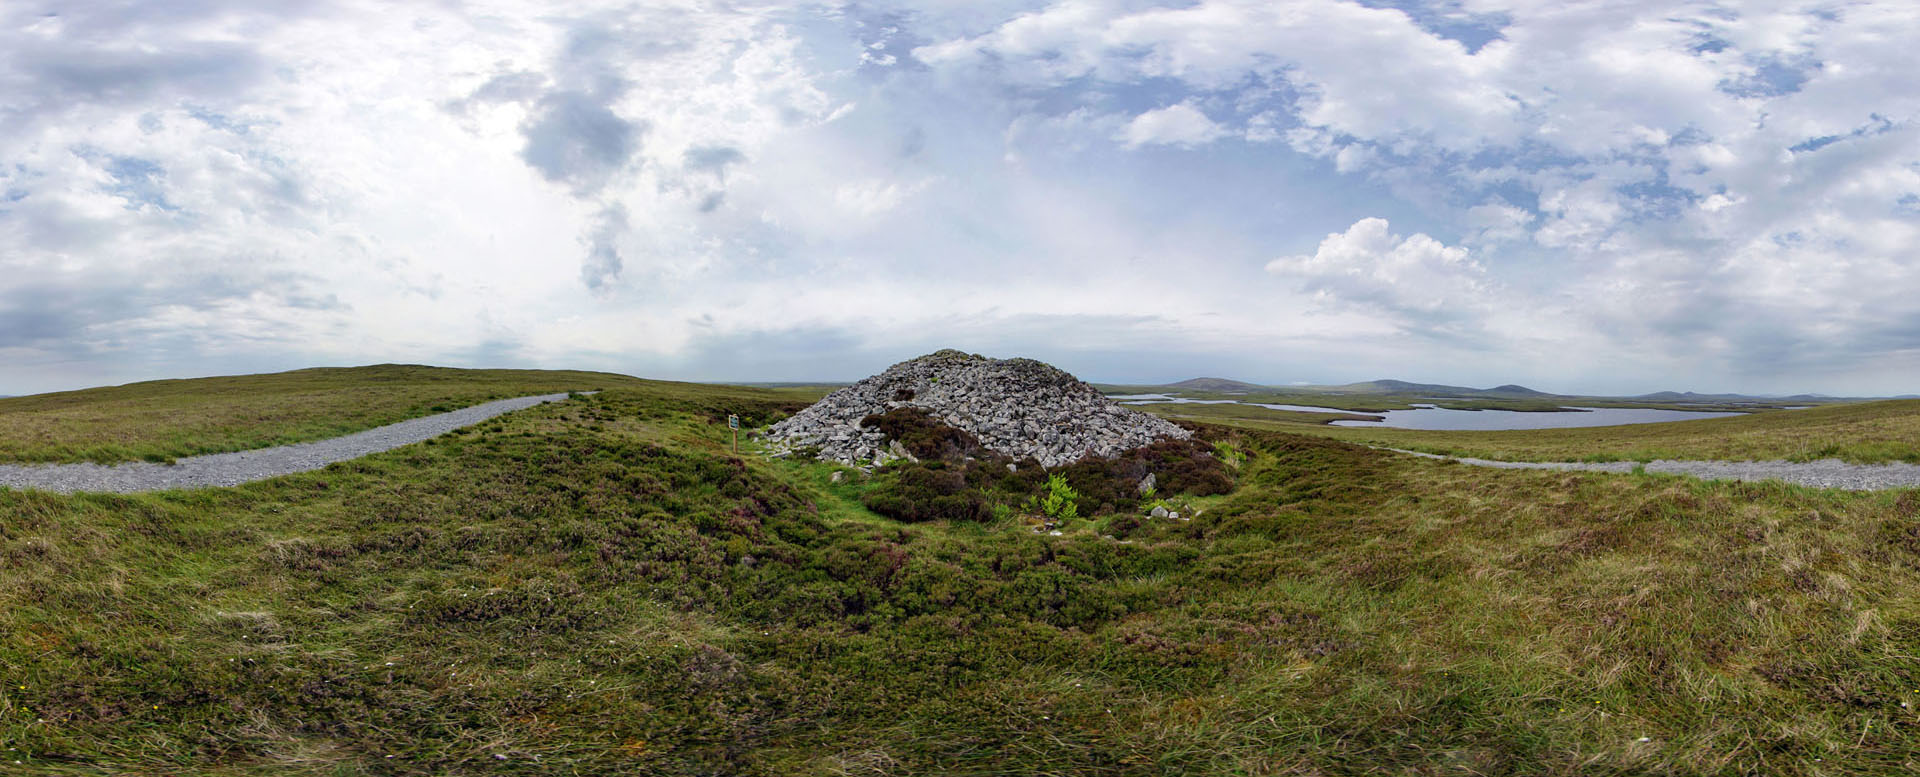 04 Barpa Langass (chambered cairn at Langass)